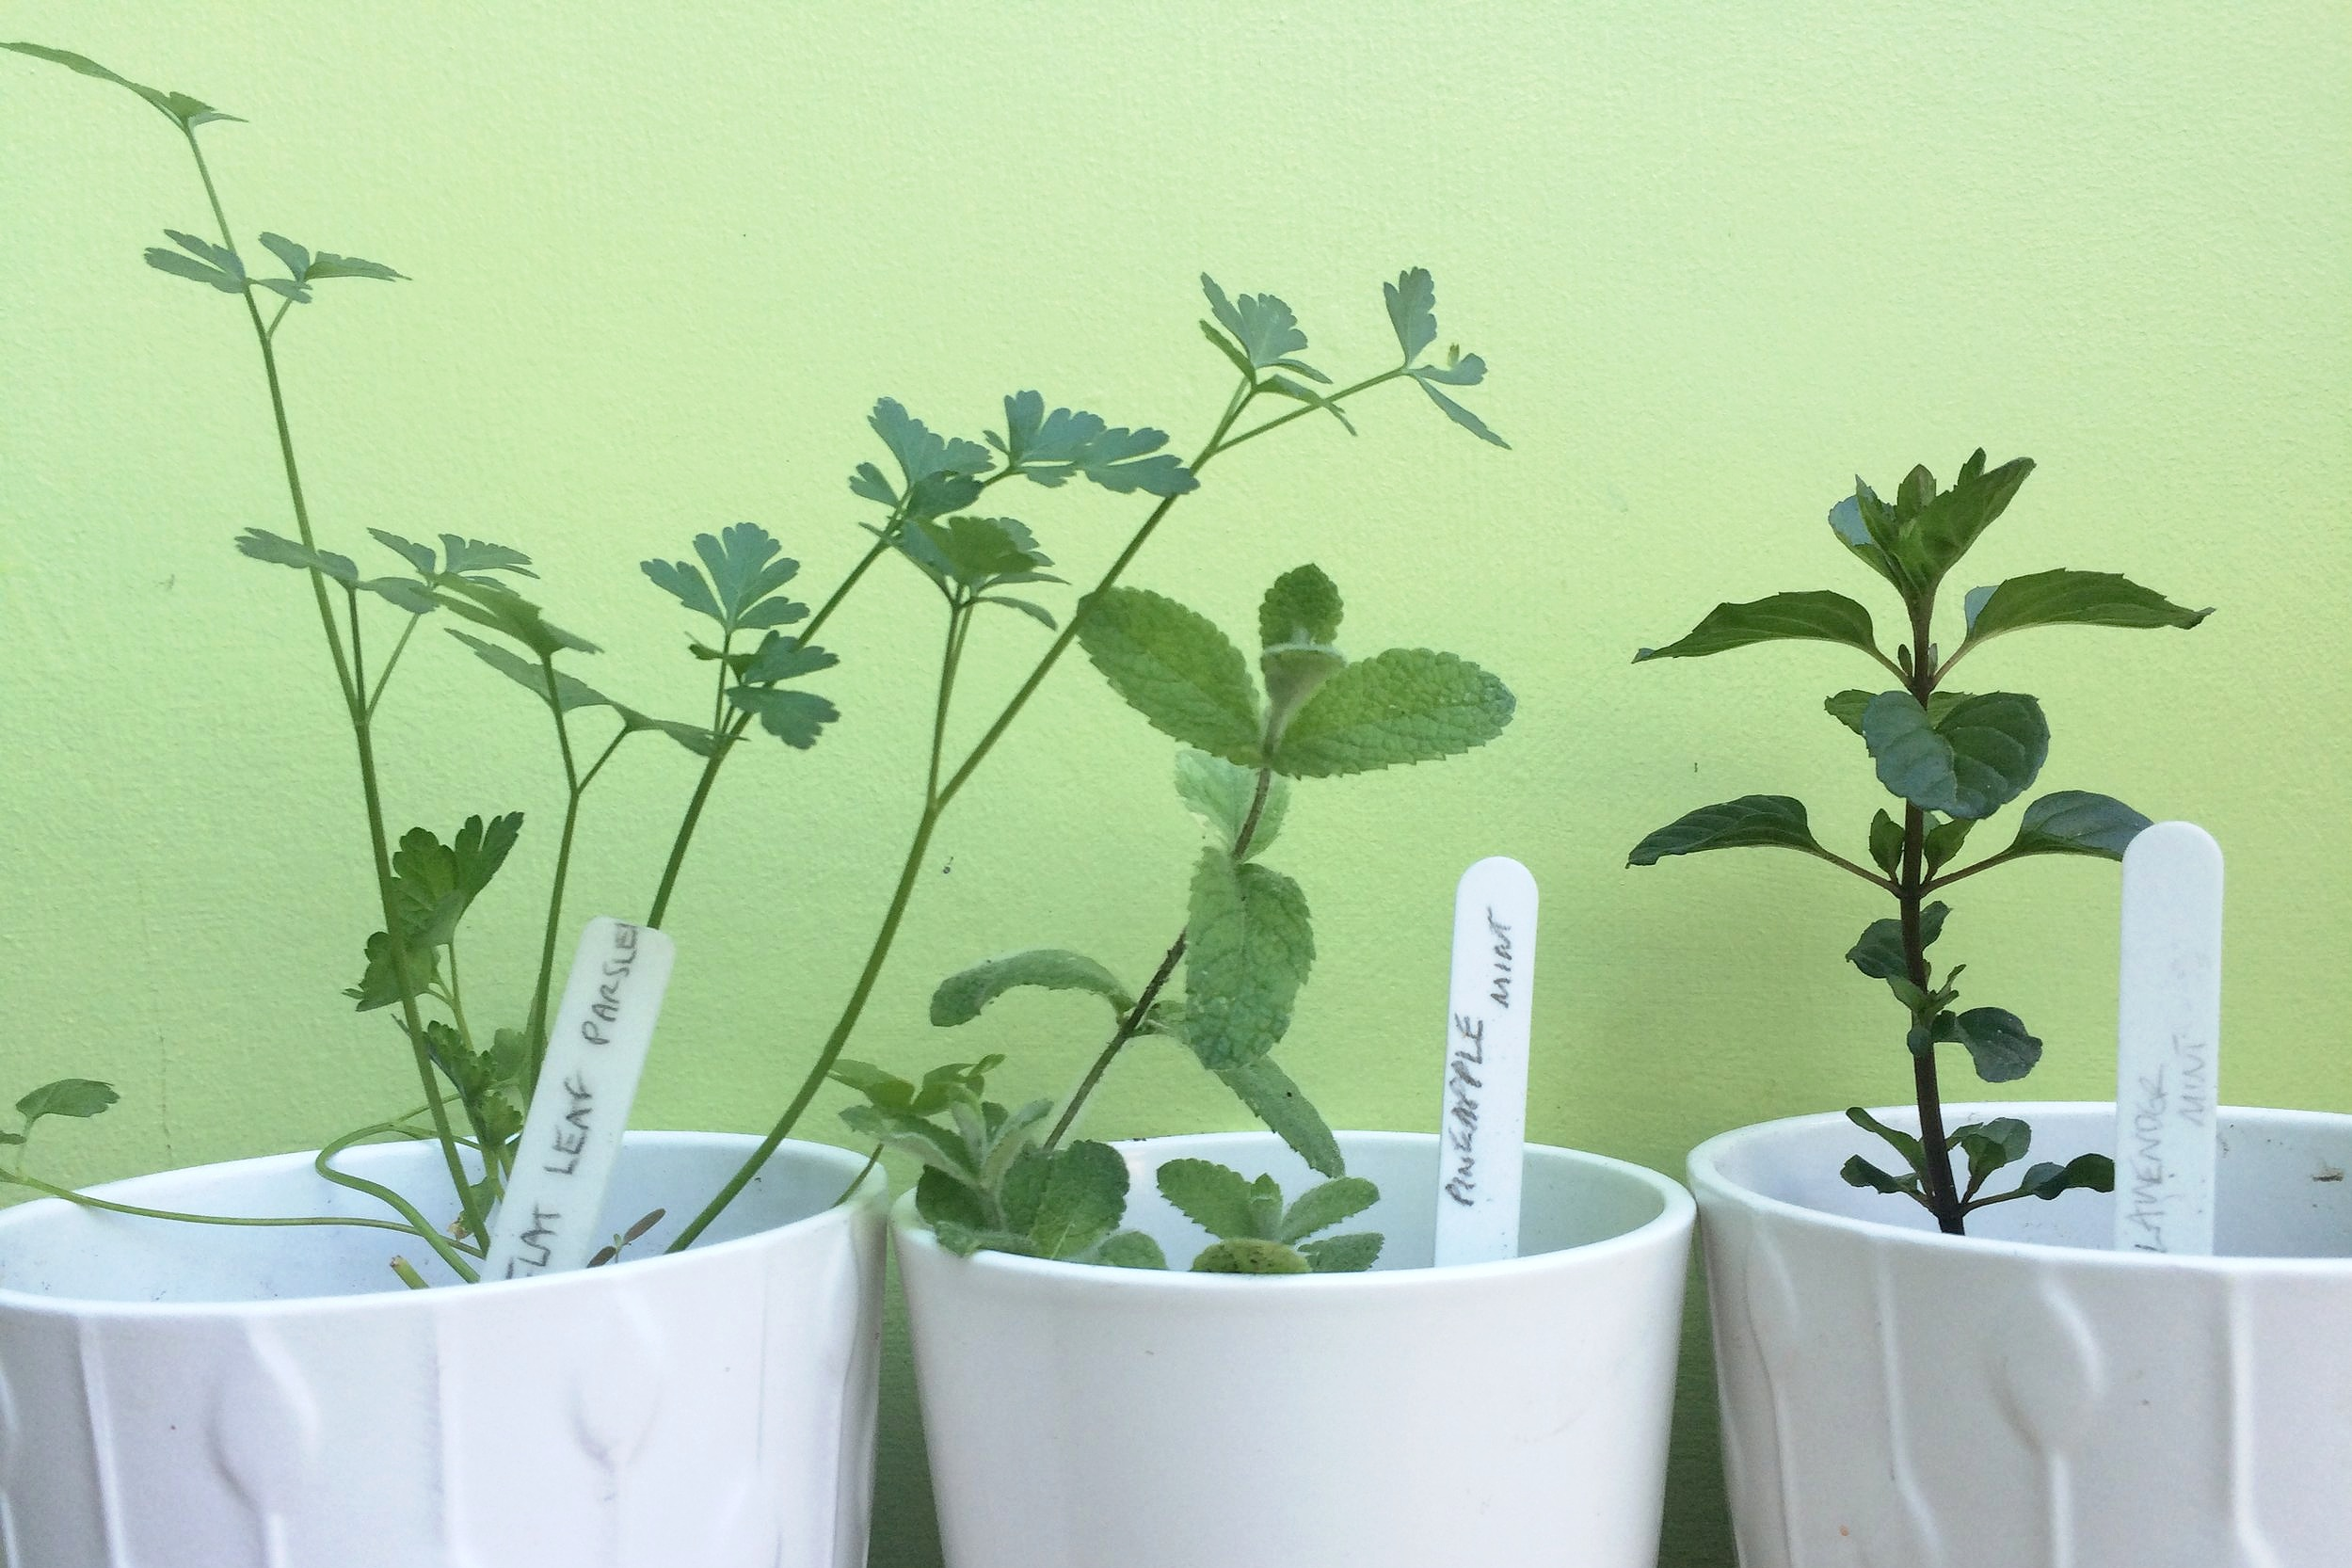 Herbs in pots: (from left) flat leaf parsley, pineapple mint and lavender mint. Photograph: Jane Perrone.